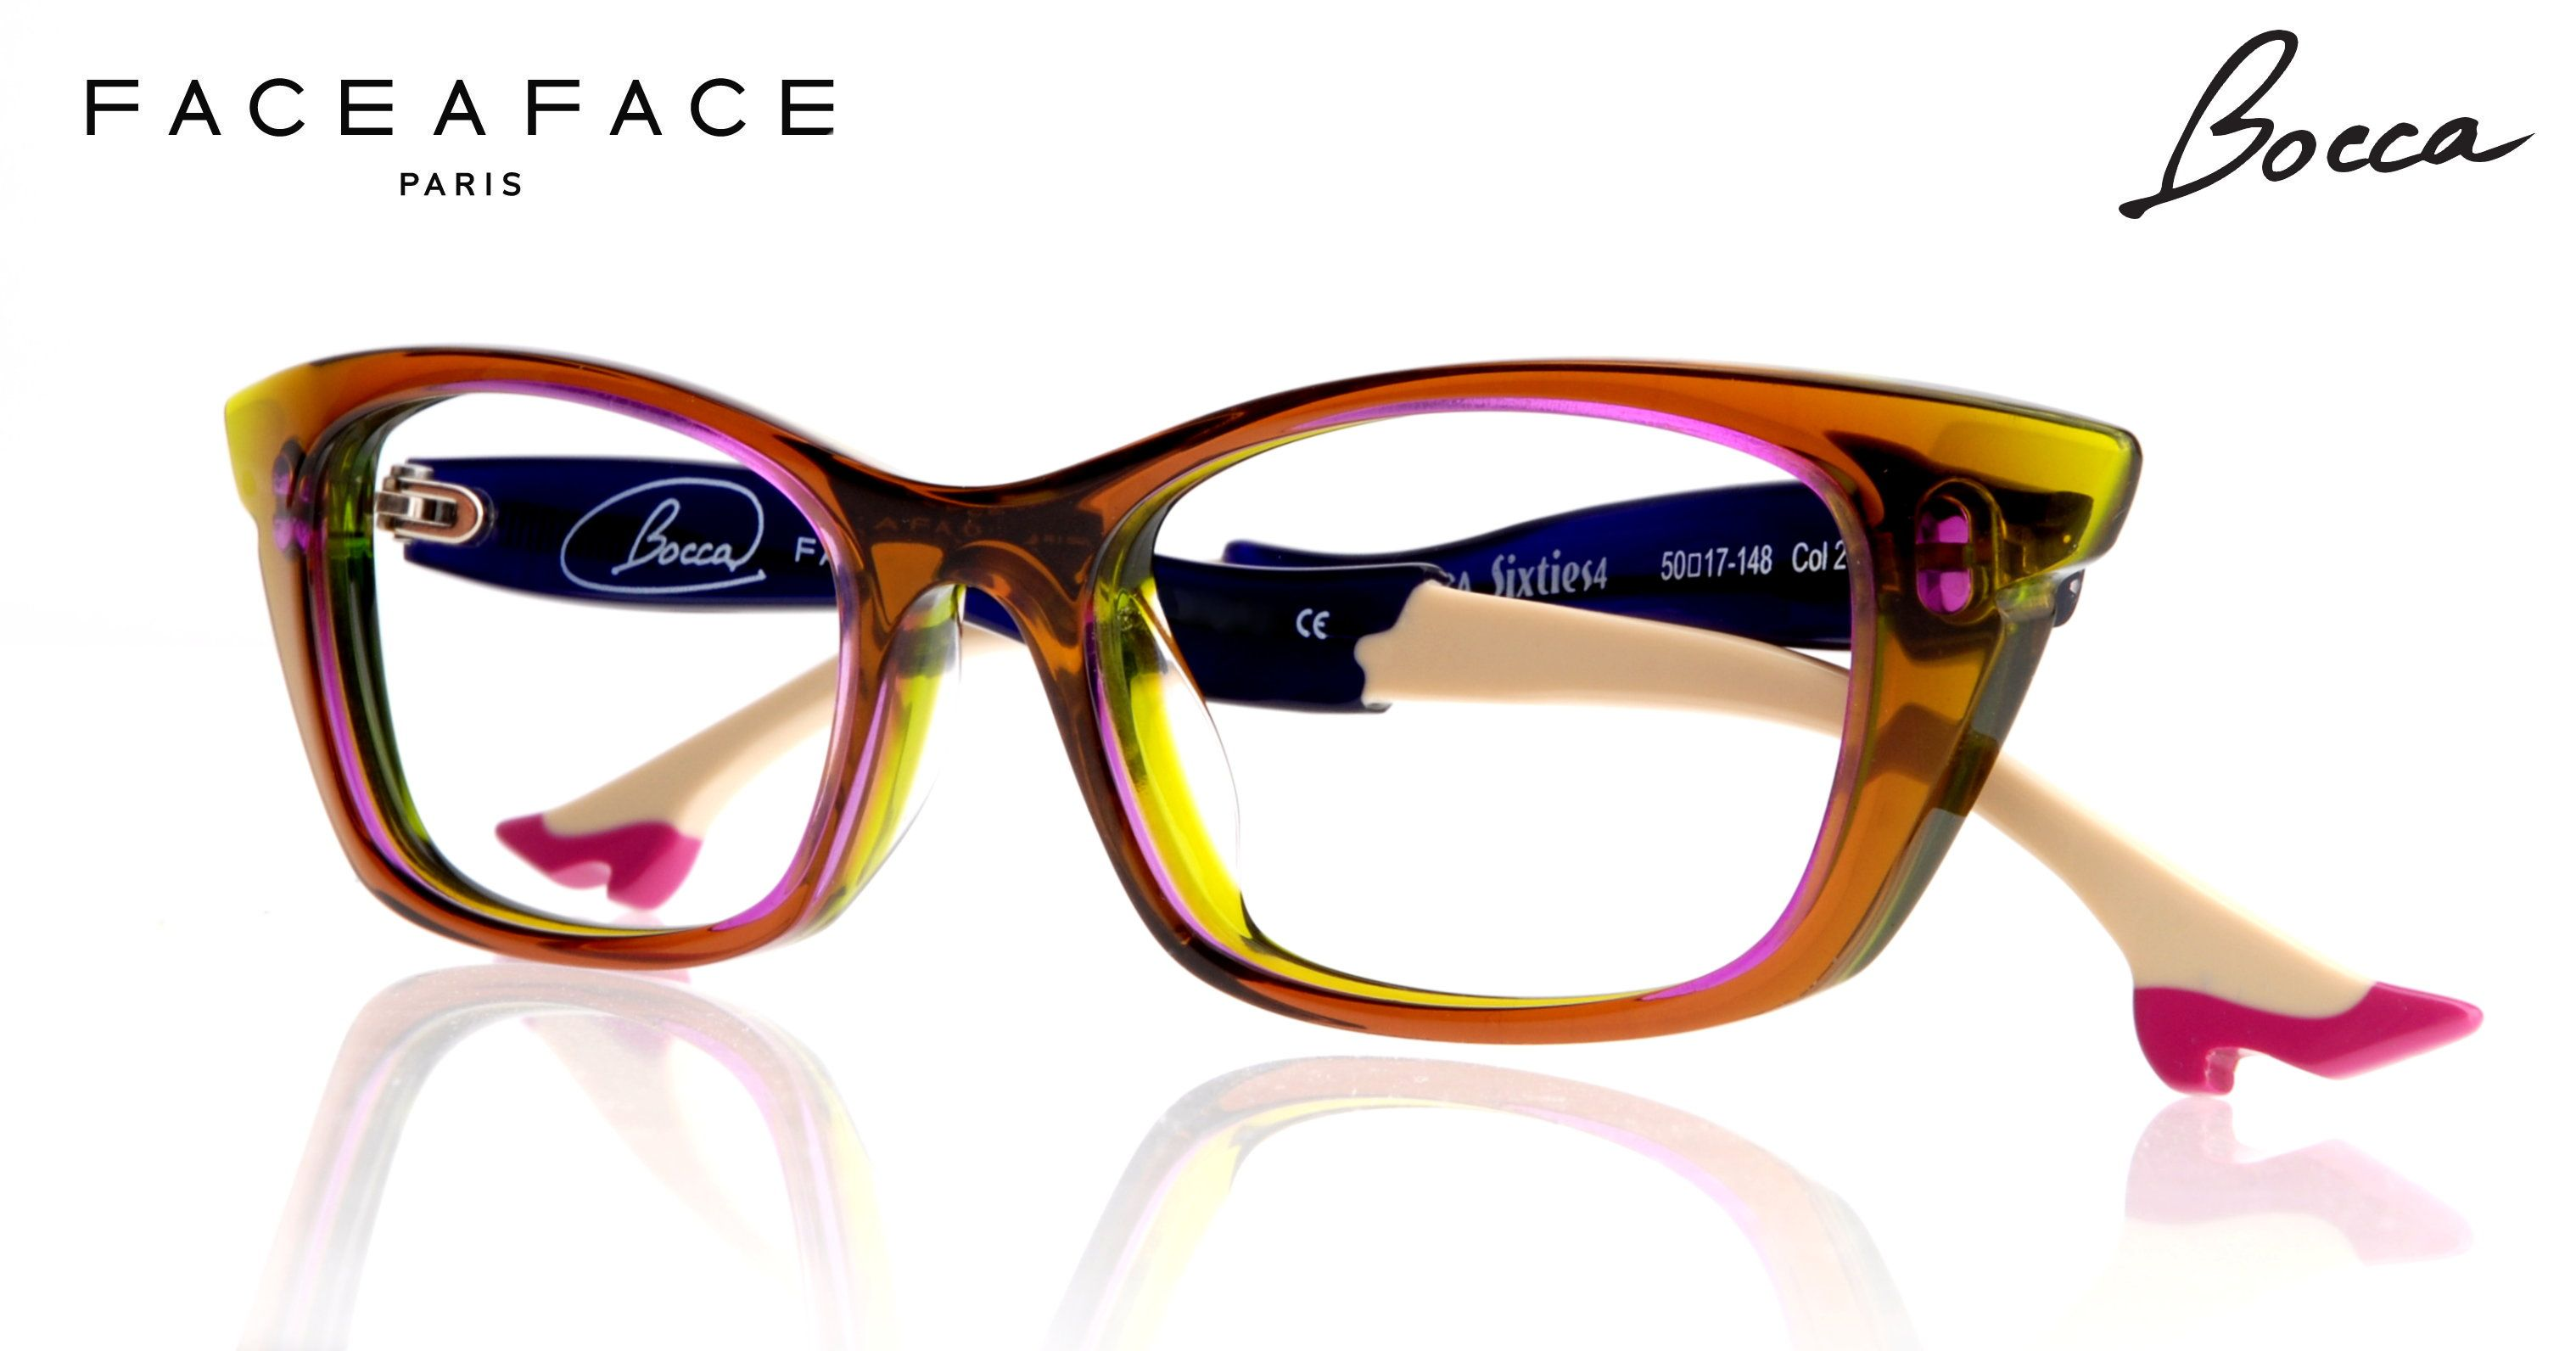 ff9da750362 Face a Face BOCCA eyewear with legs and shoes. www.faceaface-paris.com      faceaface